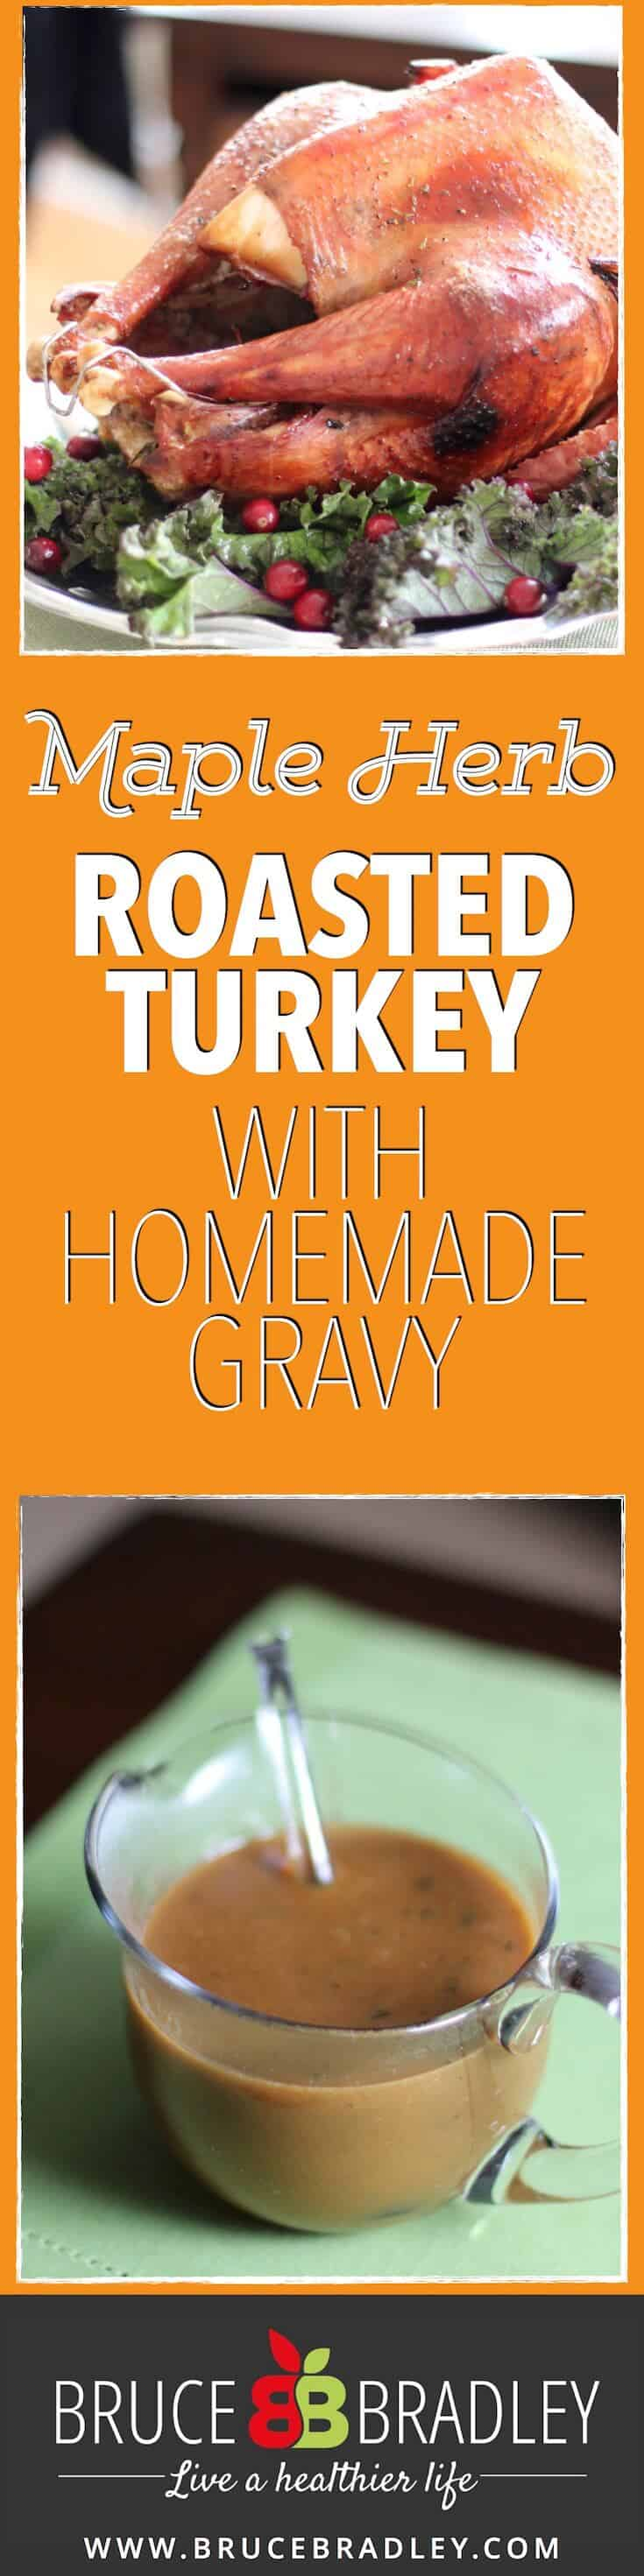 In Let's Talk Turkey Bruce Bradley shares how to find a healthier turkey plus two great recipes on how to cook a perfect Maple Herb Roasted Turkey and an easy, Homemade Gravy that doesn't have to cause a last minute panic!